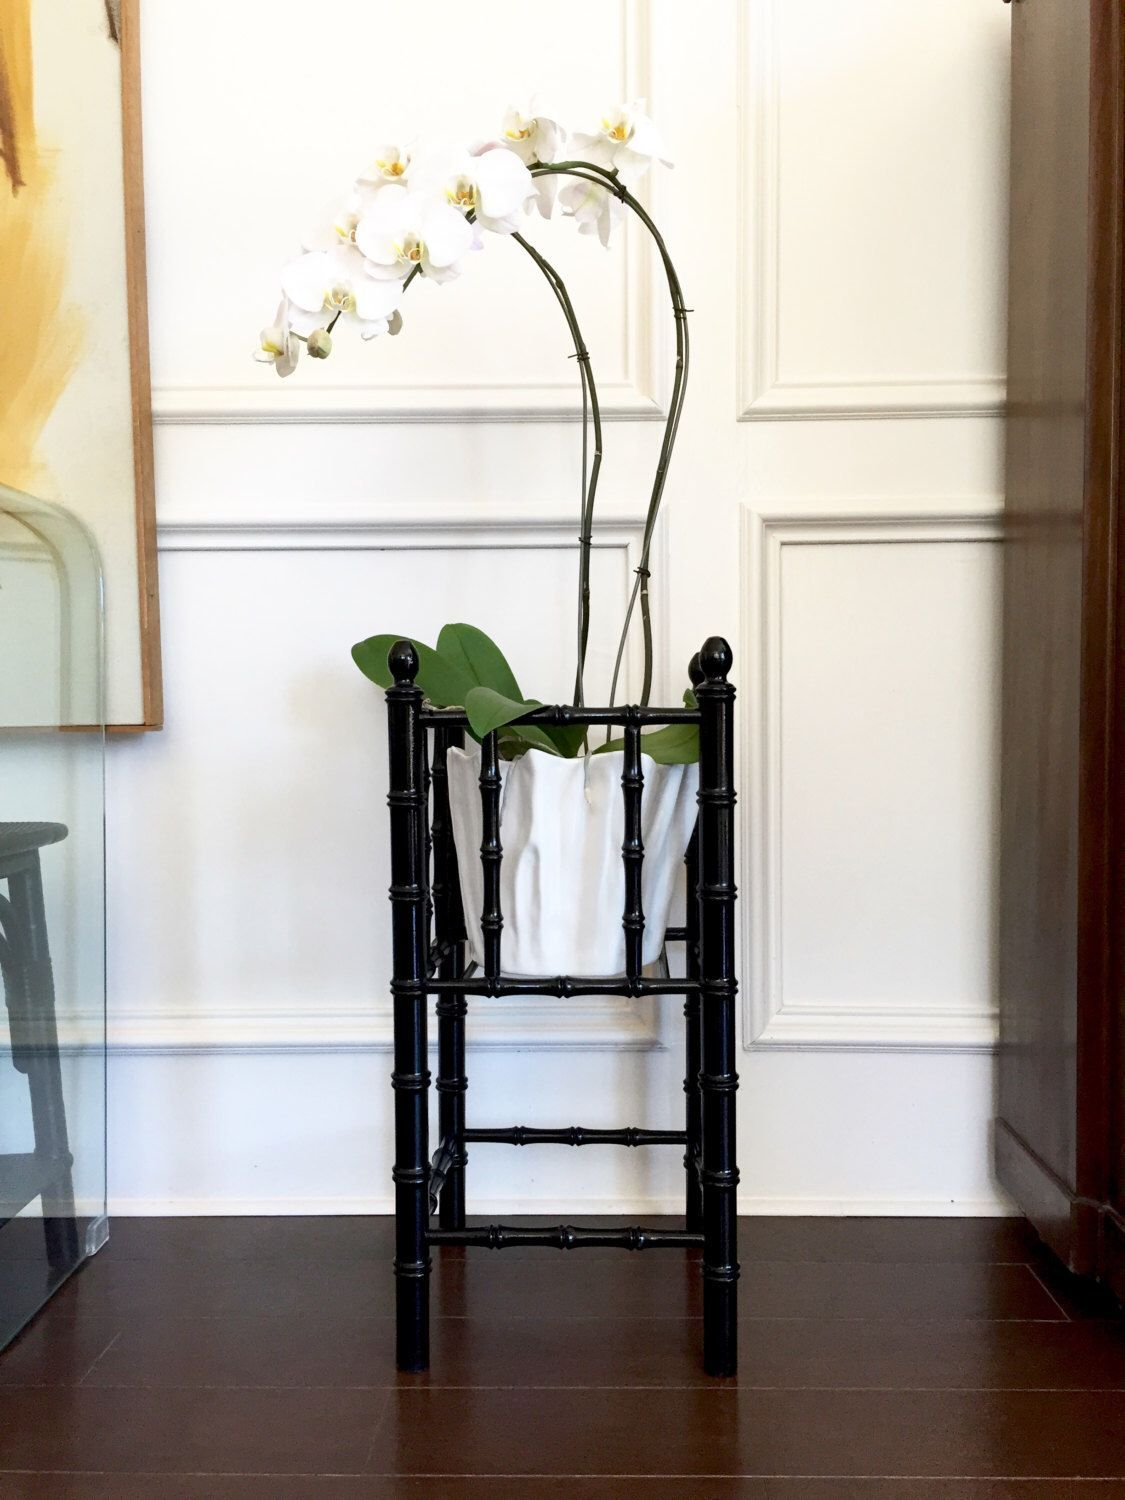 Faux bamboo plant stand | Chippendale or Chinoiserie style bamboo planter | glossy black vintage | modern planter#bamboo #black #chinoiserie #chippendale #faux #glossy #modern #plant #planter #stand #style #vintage